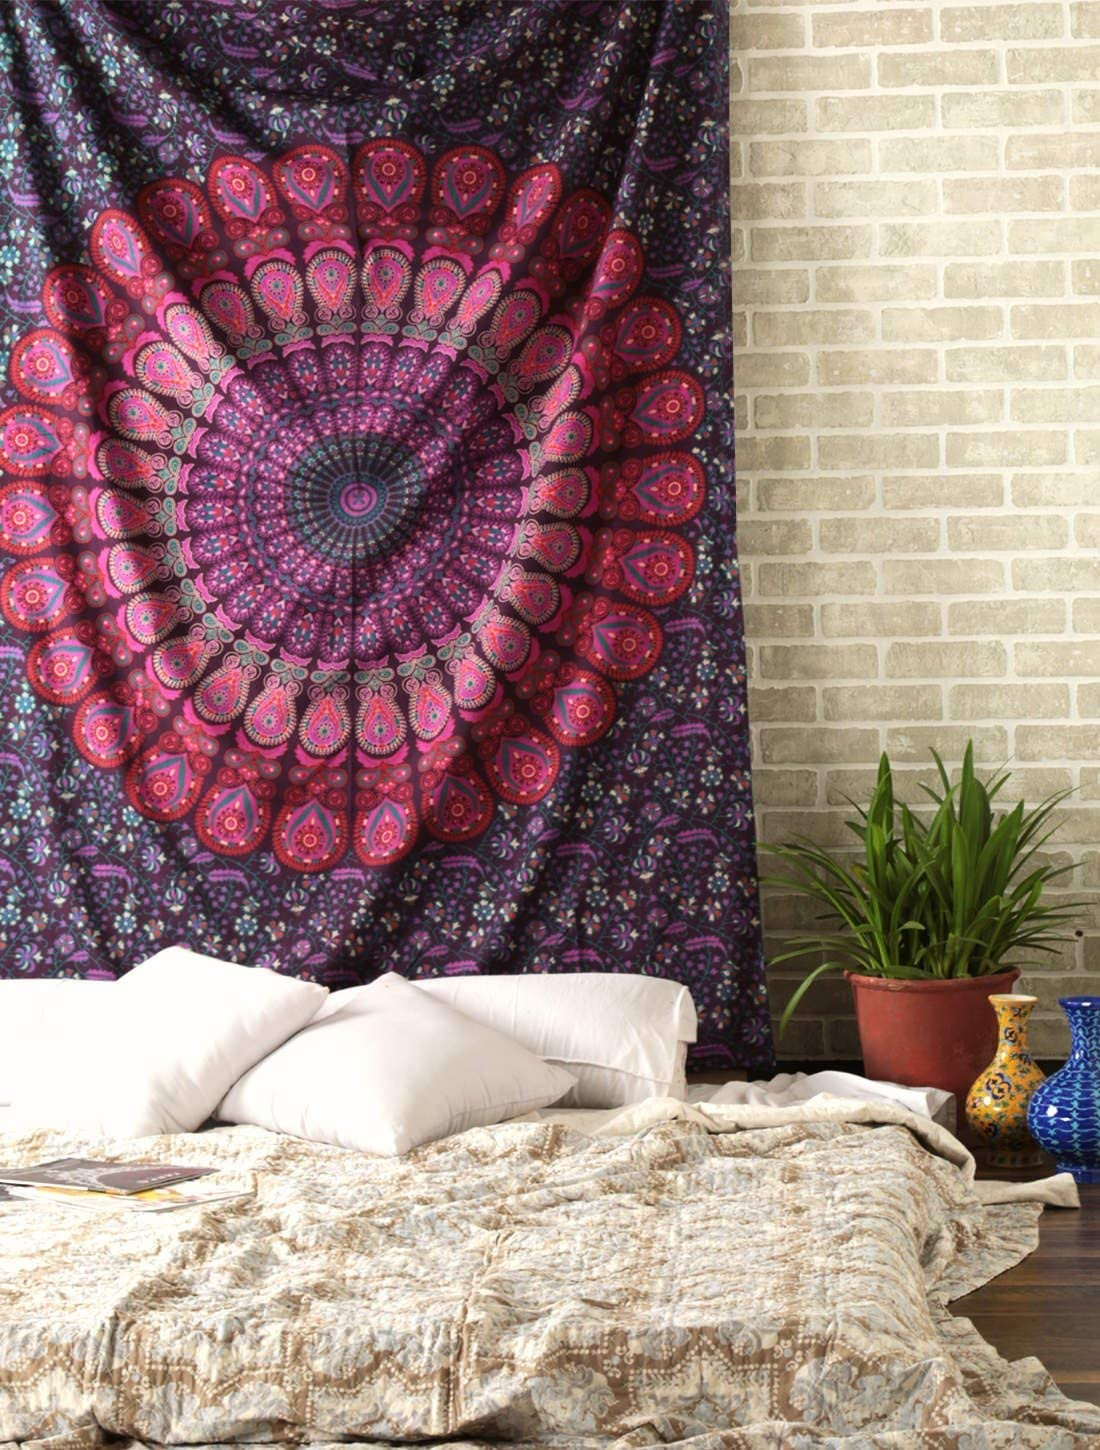 Wall Decor Ombre Mandala Wall Hanging Tapestry for Men and Women Elegant Boho Room Decoration Pink and Purple Tapestries 50x60 Inches